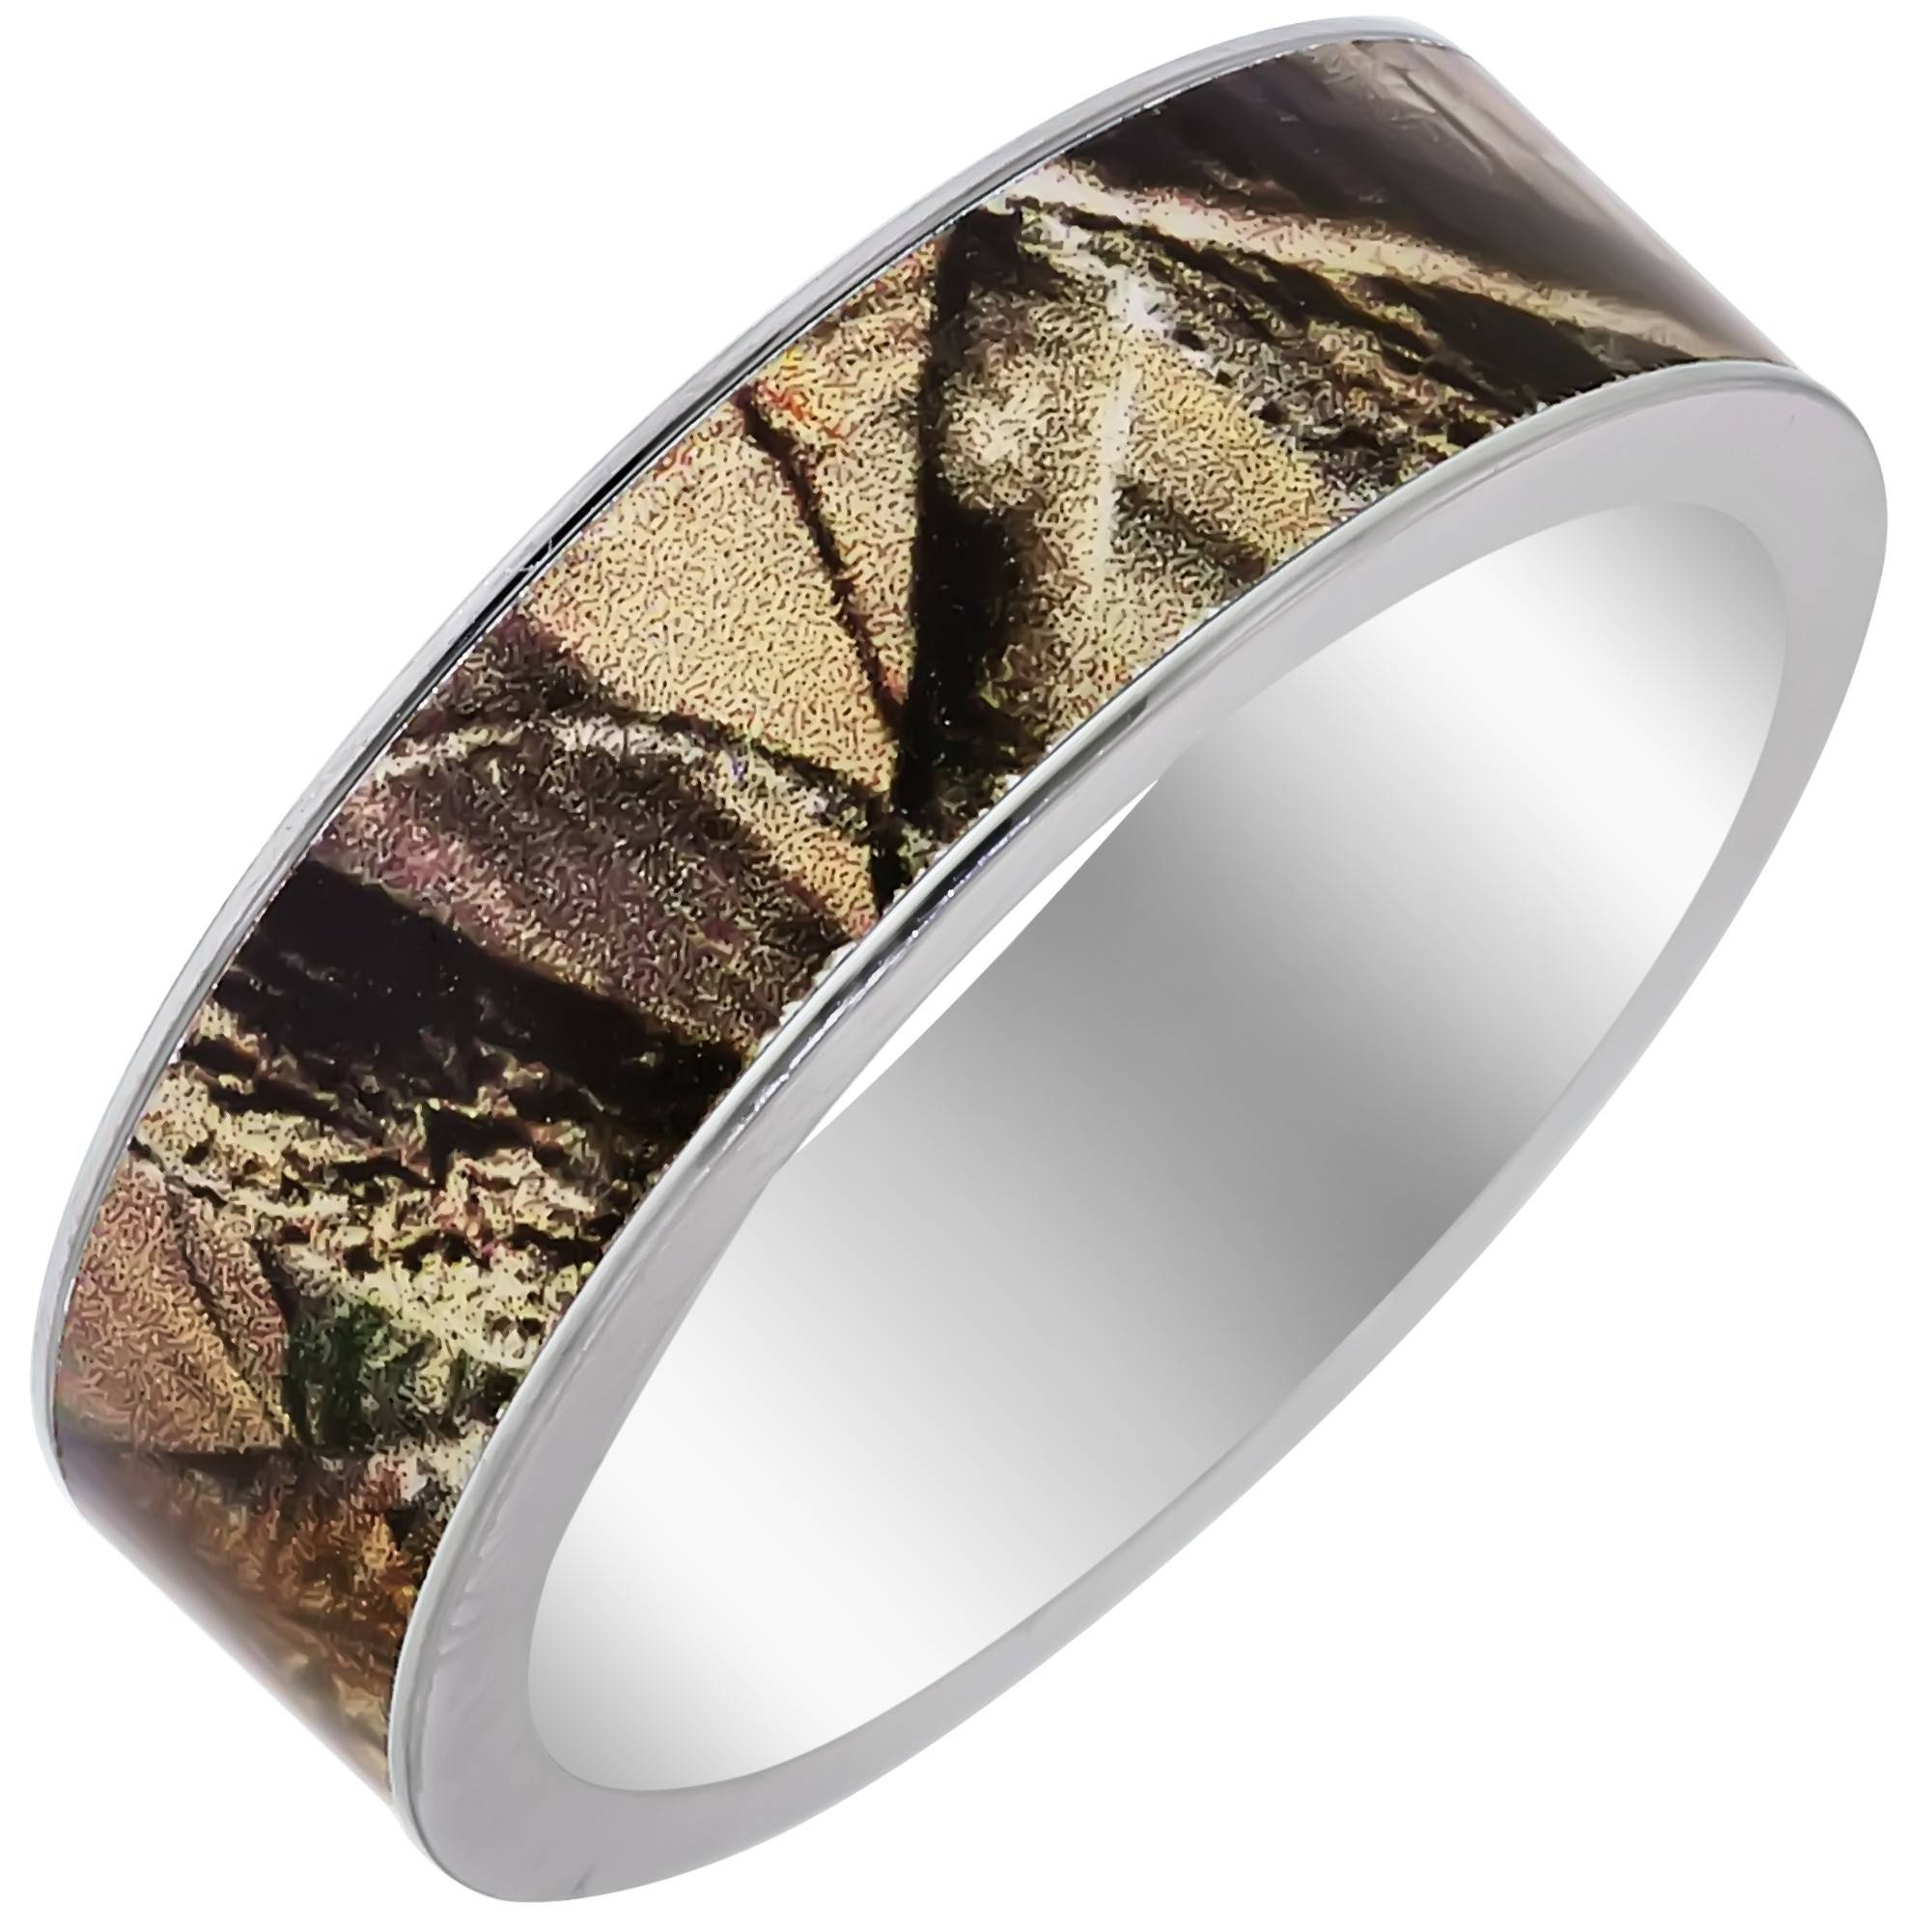 Mens Camouflage Wedding Band In Titanium (7Mm) Intended For Camouflage Wedding Bands For Him (Gallery 1 of 15)